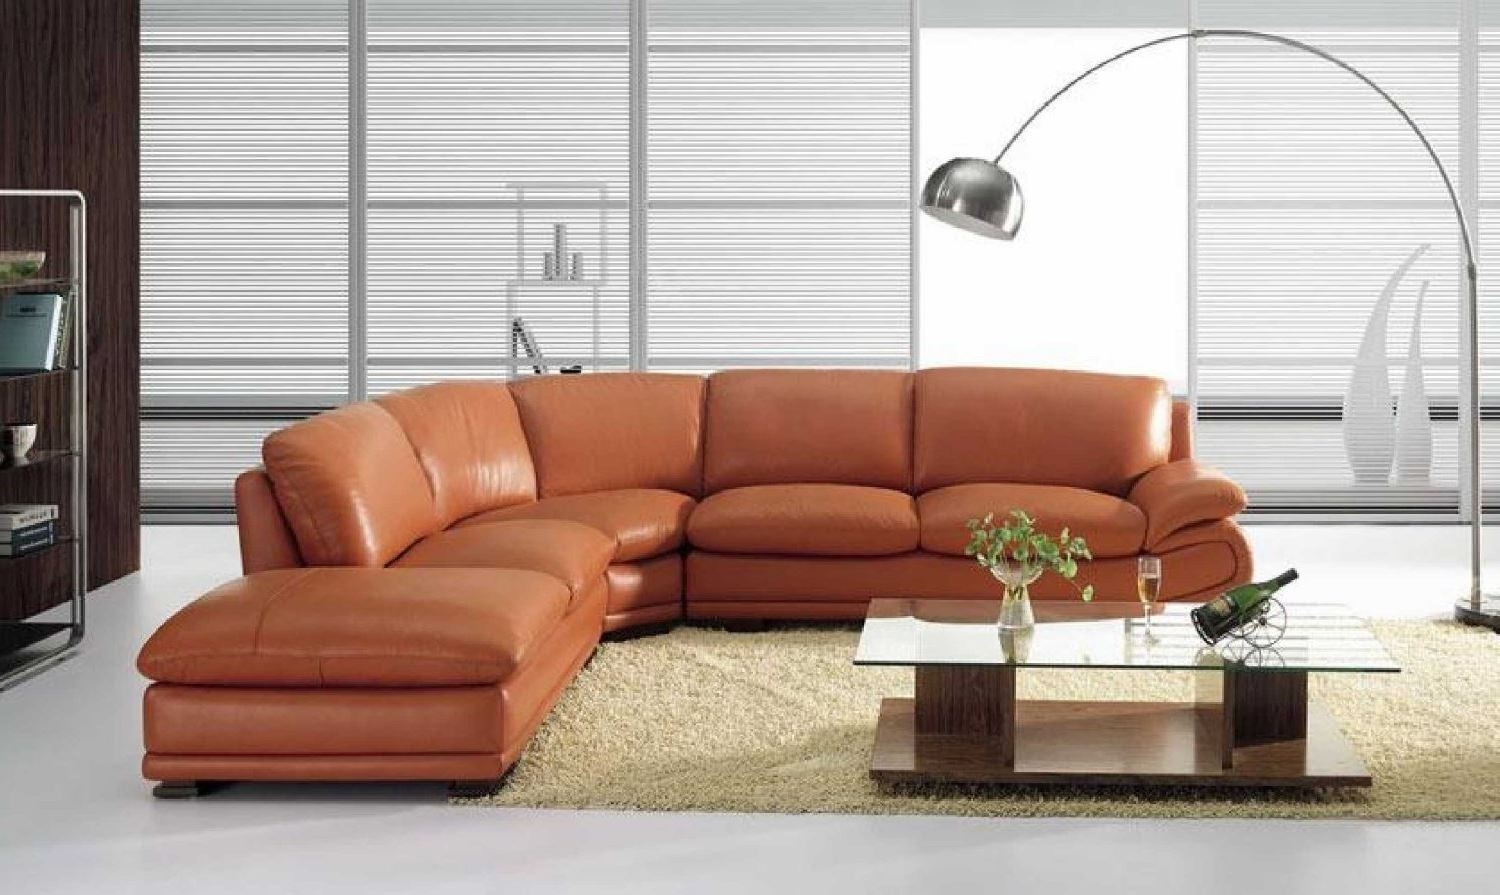 Vig Furniture Bo 3920 Leather Modern Camel Sectional Sofa with regard to Camel Sectional Sofas (Image 10 of 10)